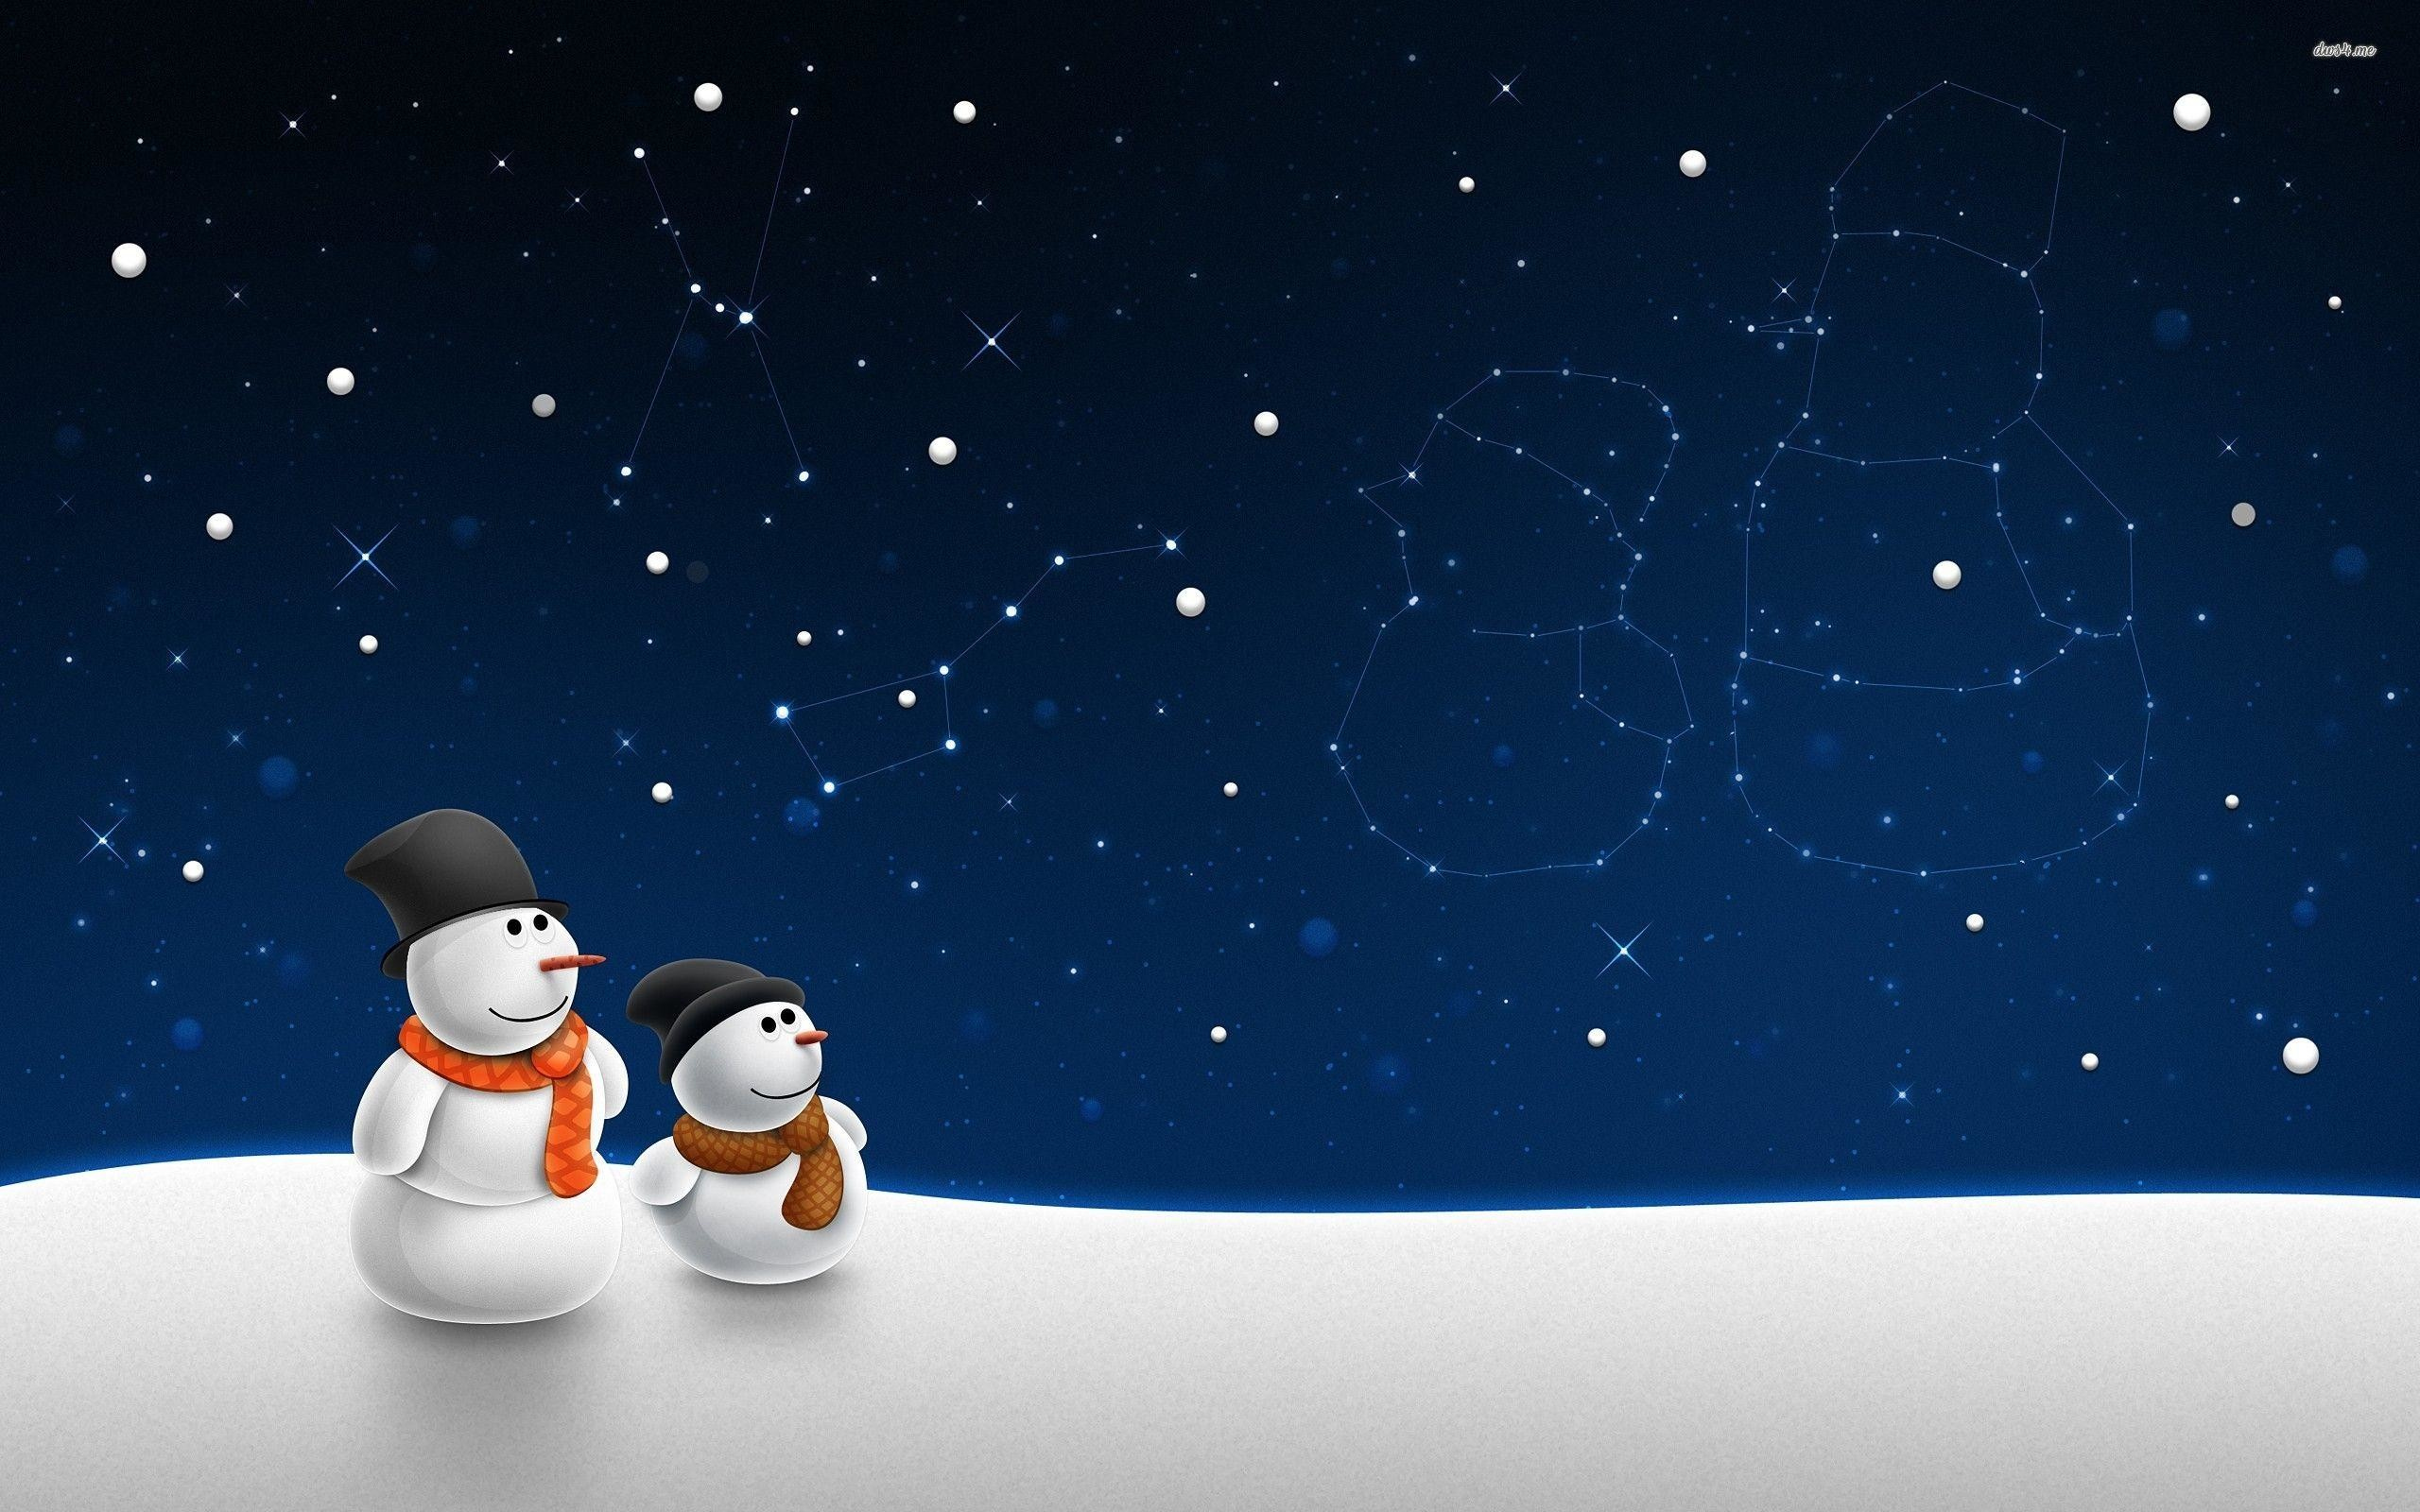 Snowman wallpaper for computer images